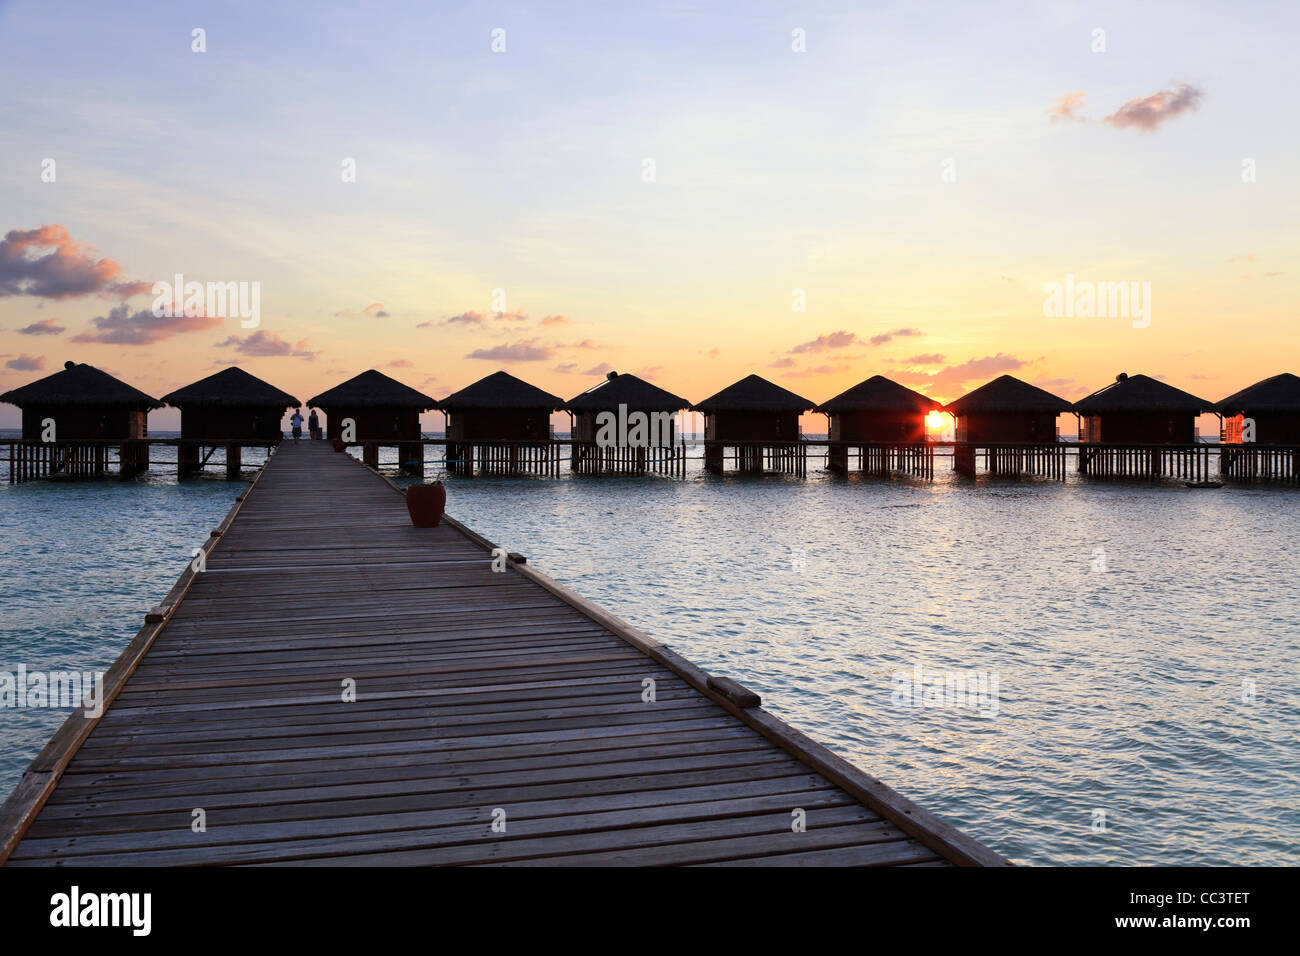 Maldives, Faafu Atoll, Filitheyo Island, Luxury Resort Stock Photo